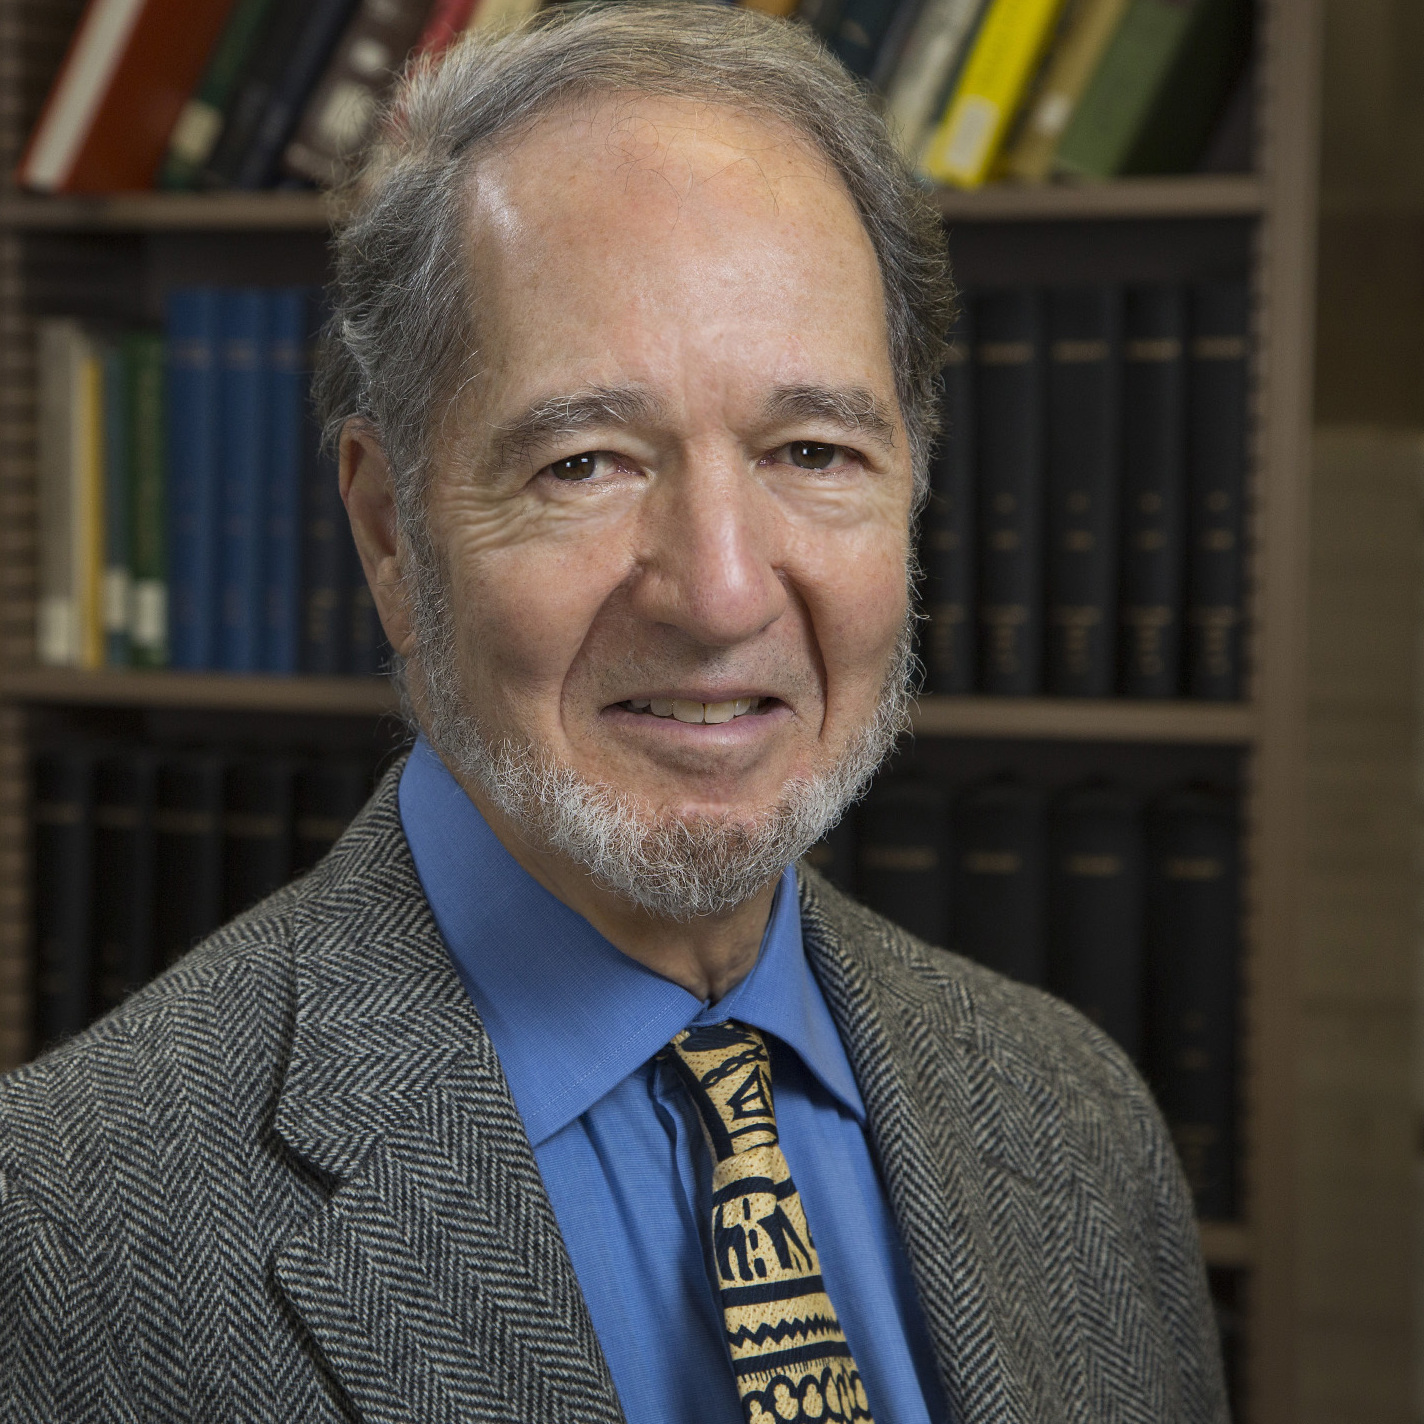 Jared Diamond is also the author of Guns, Germs, and Steel and Why Is Sex Fun?